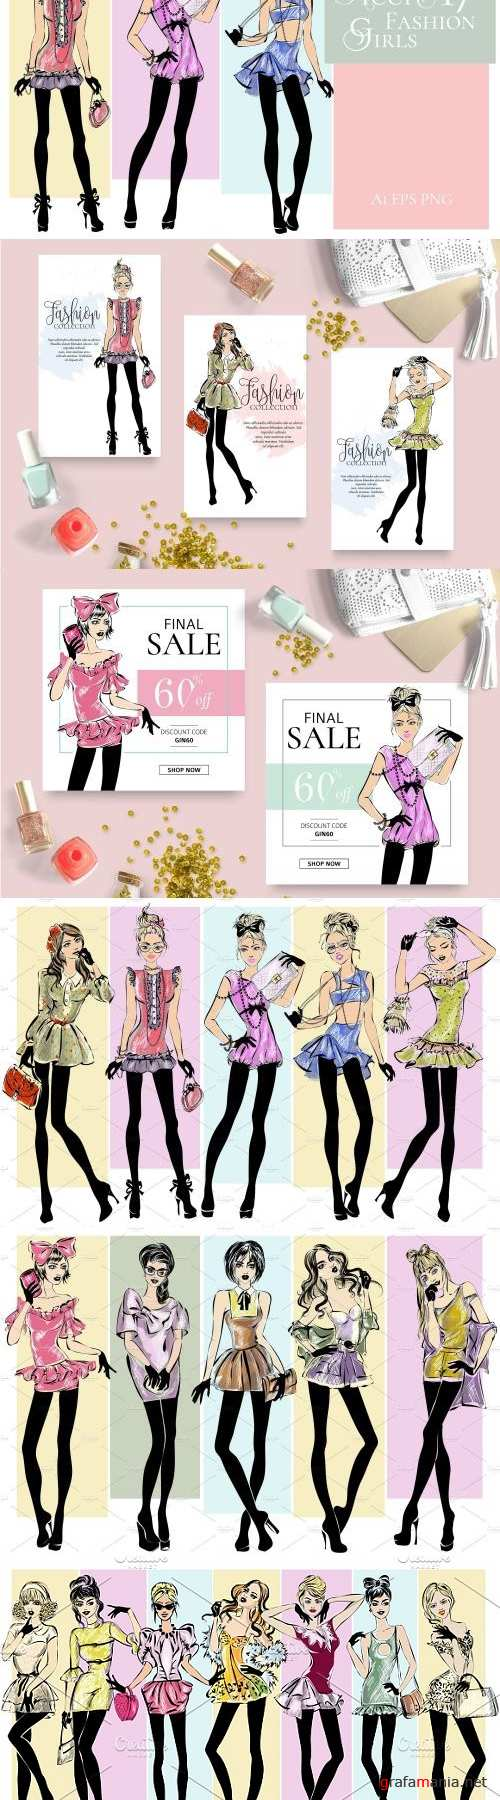 17 Teen Fashion Girls Illustrations - 2420554